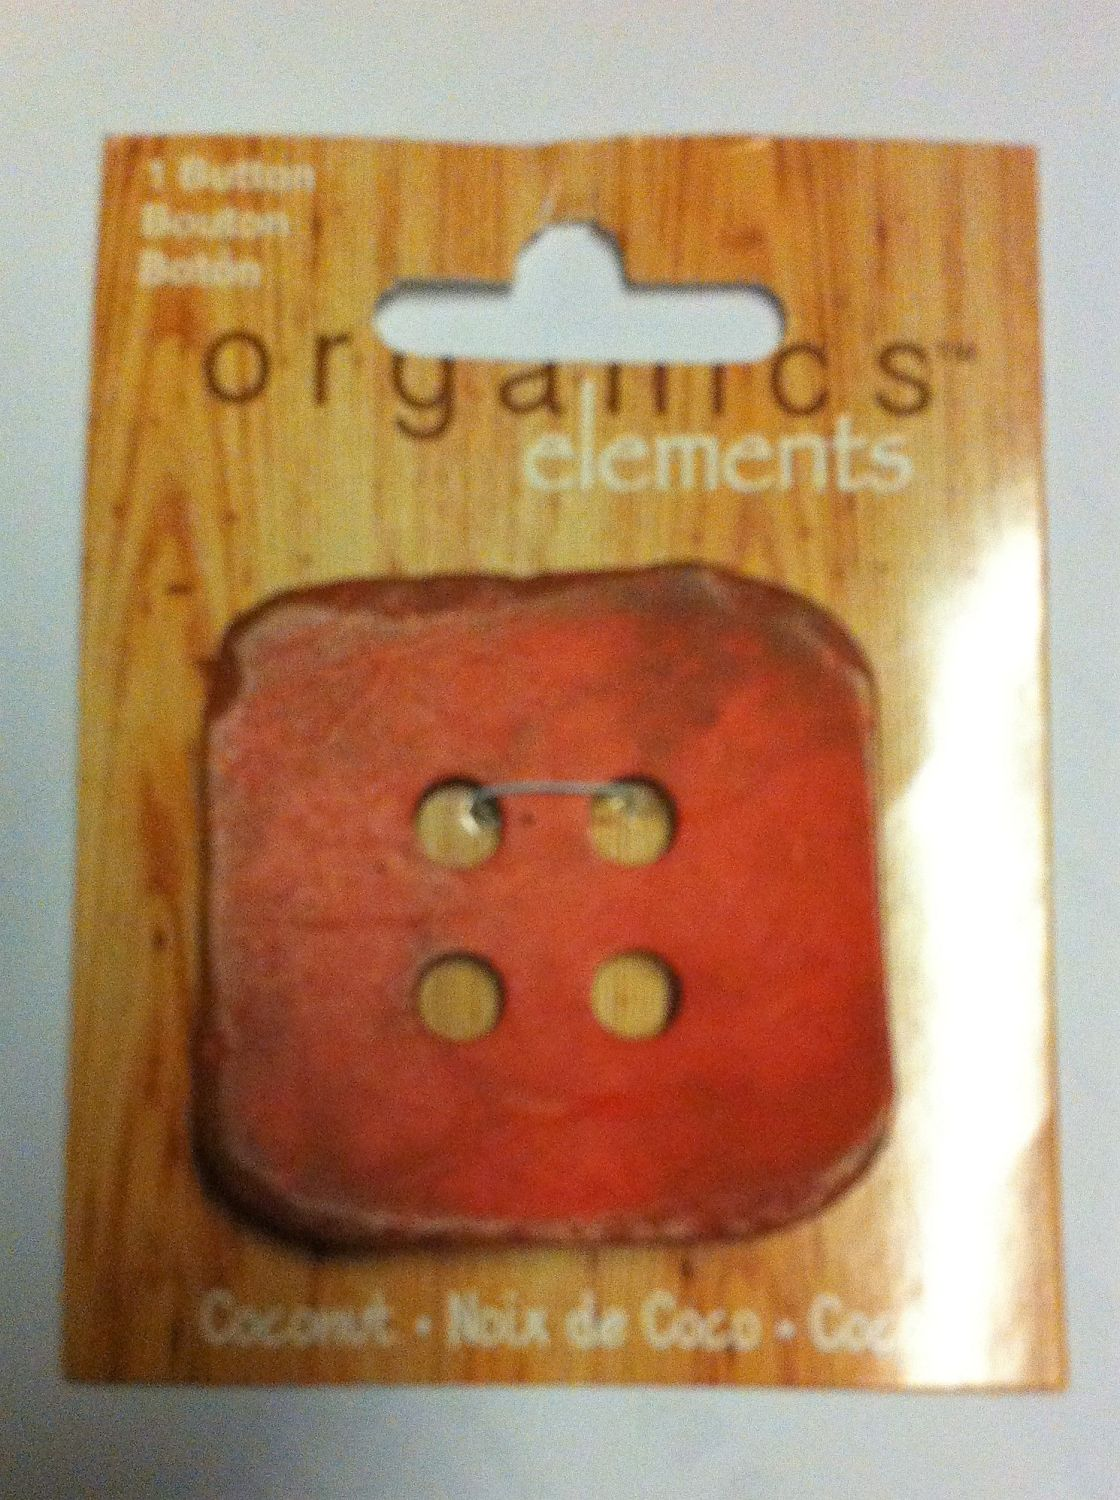 Organics elements coconut 2